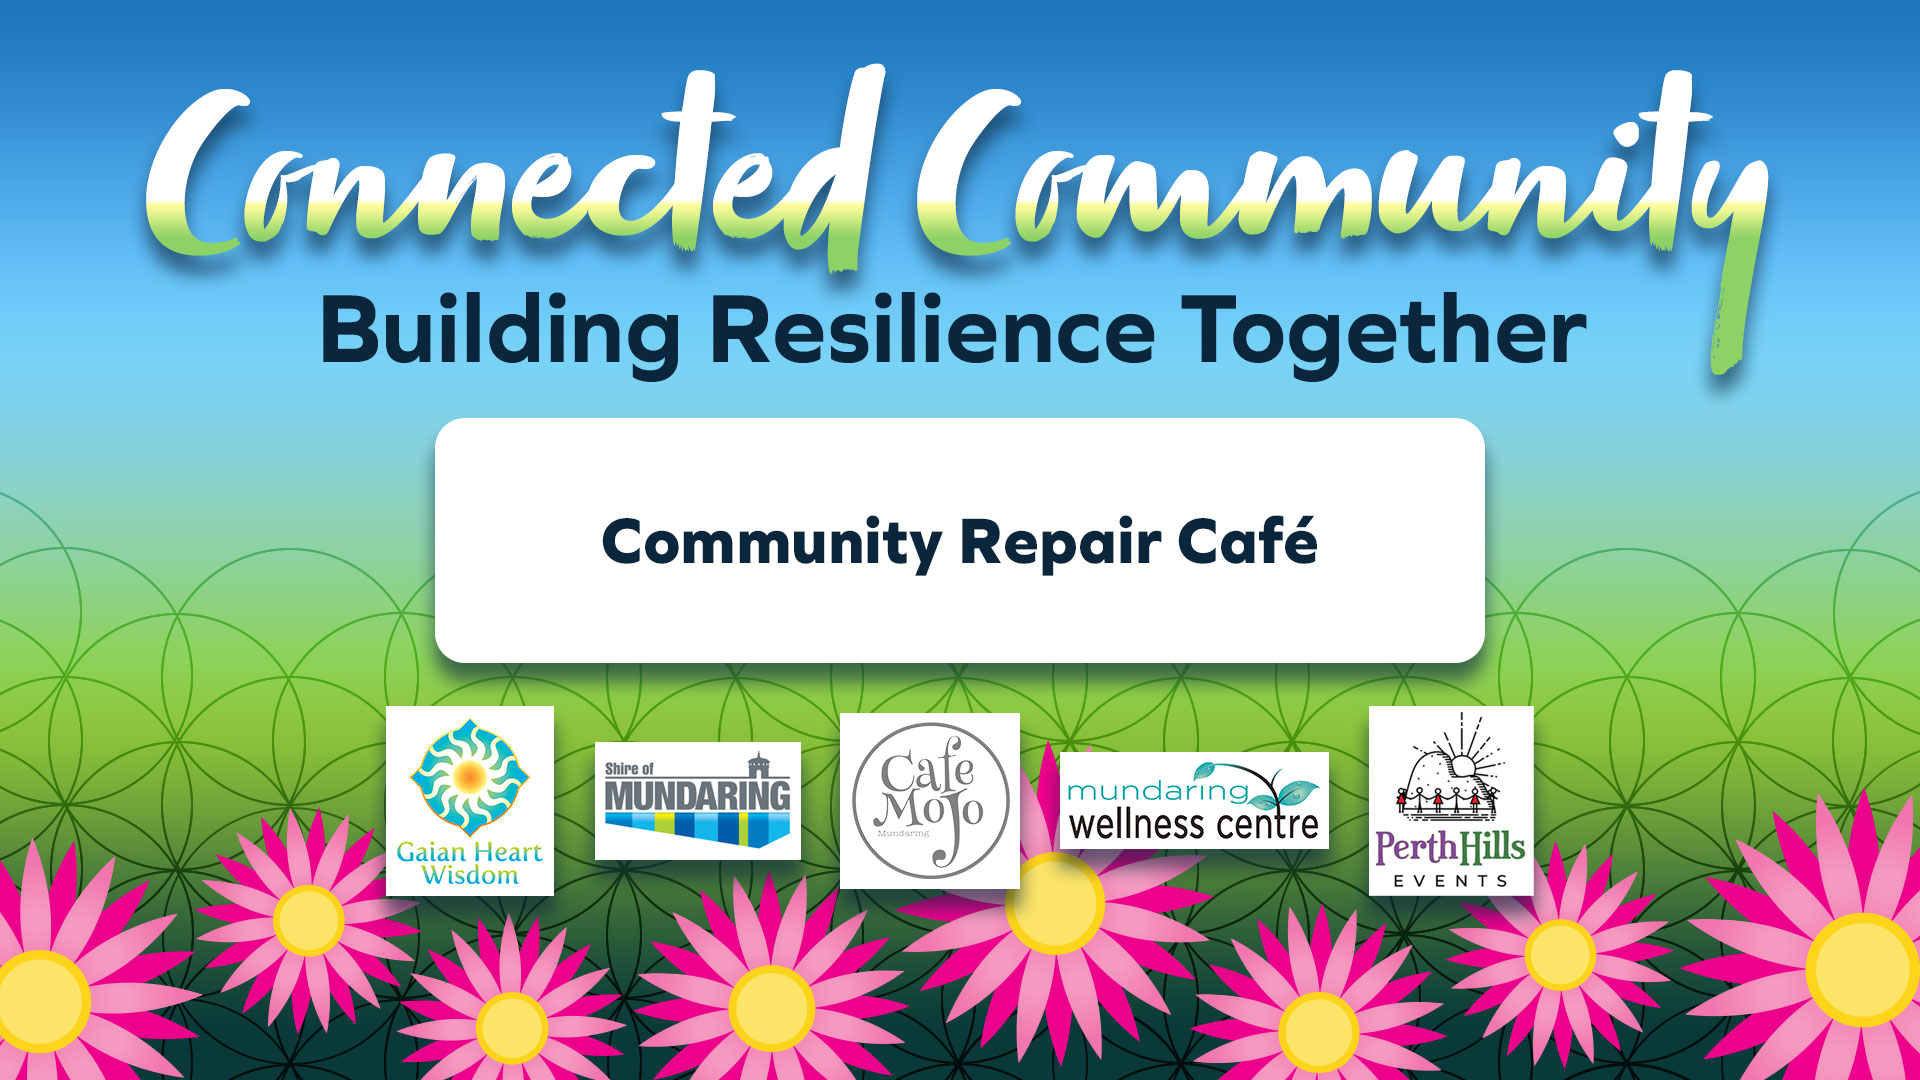 Community Repair Cafe